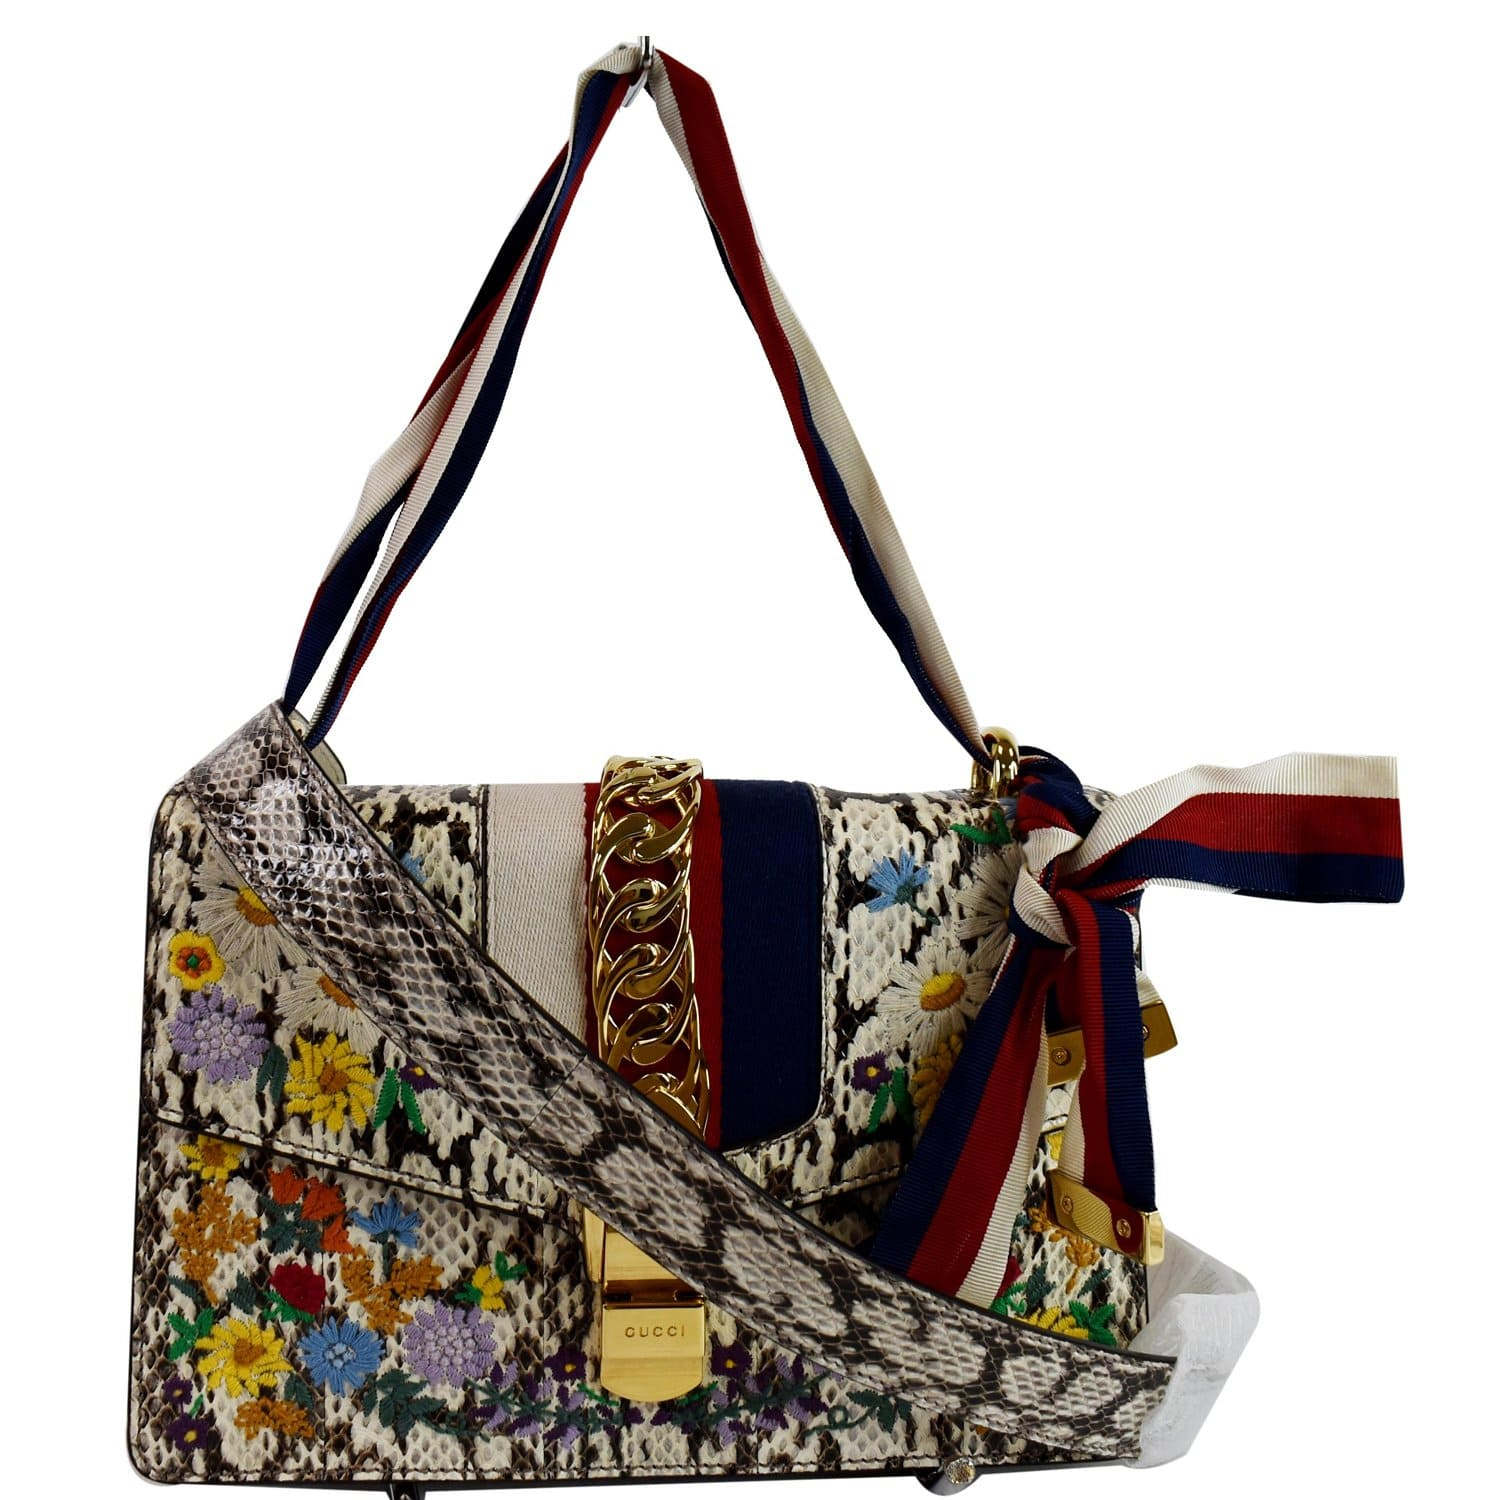 GUCCI Small Sylvie Floral Embroidered Roccia Snakeskin Shoulder Bag Multi 421882